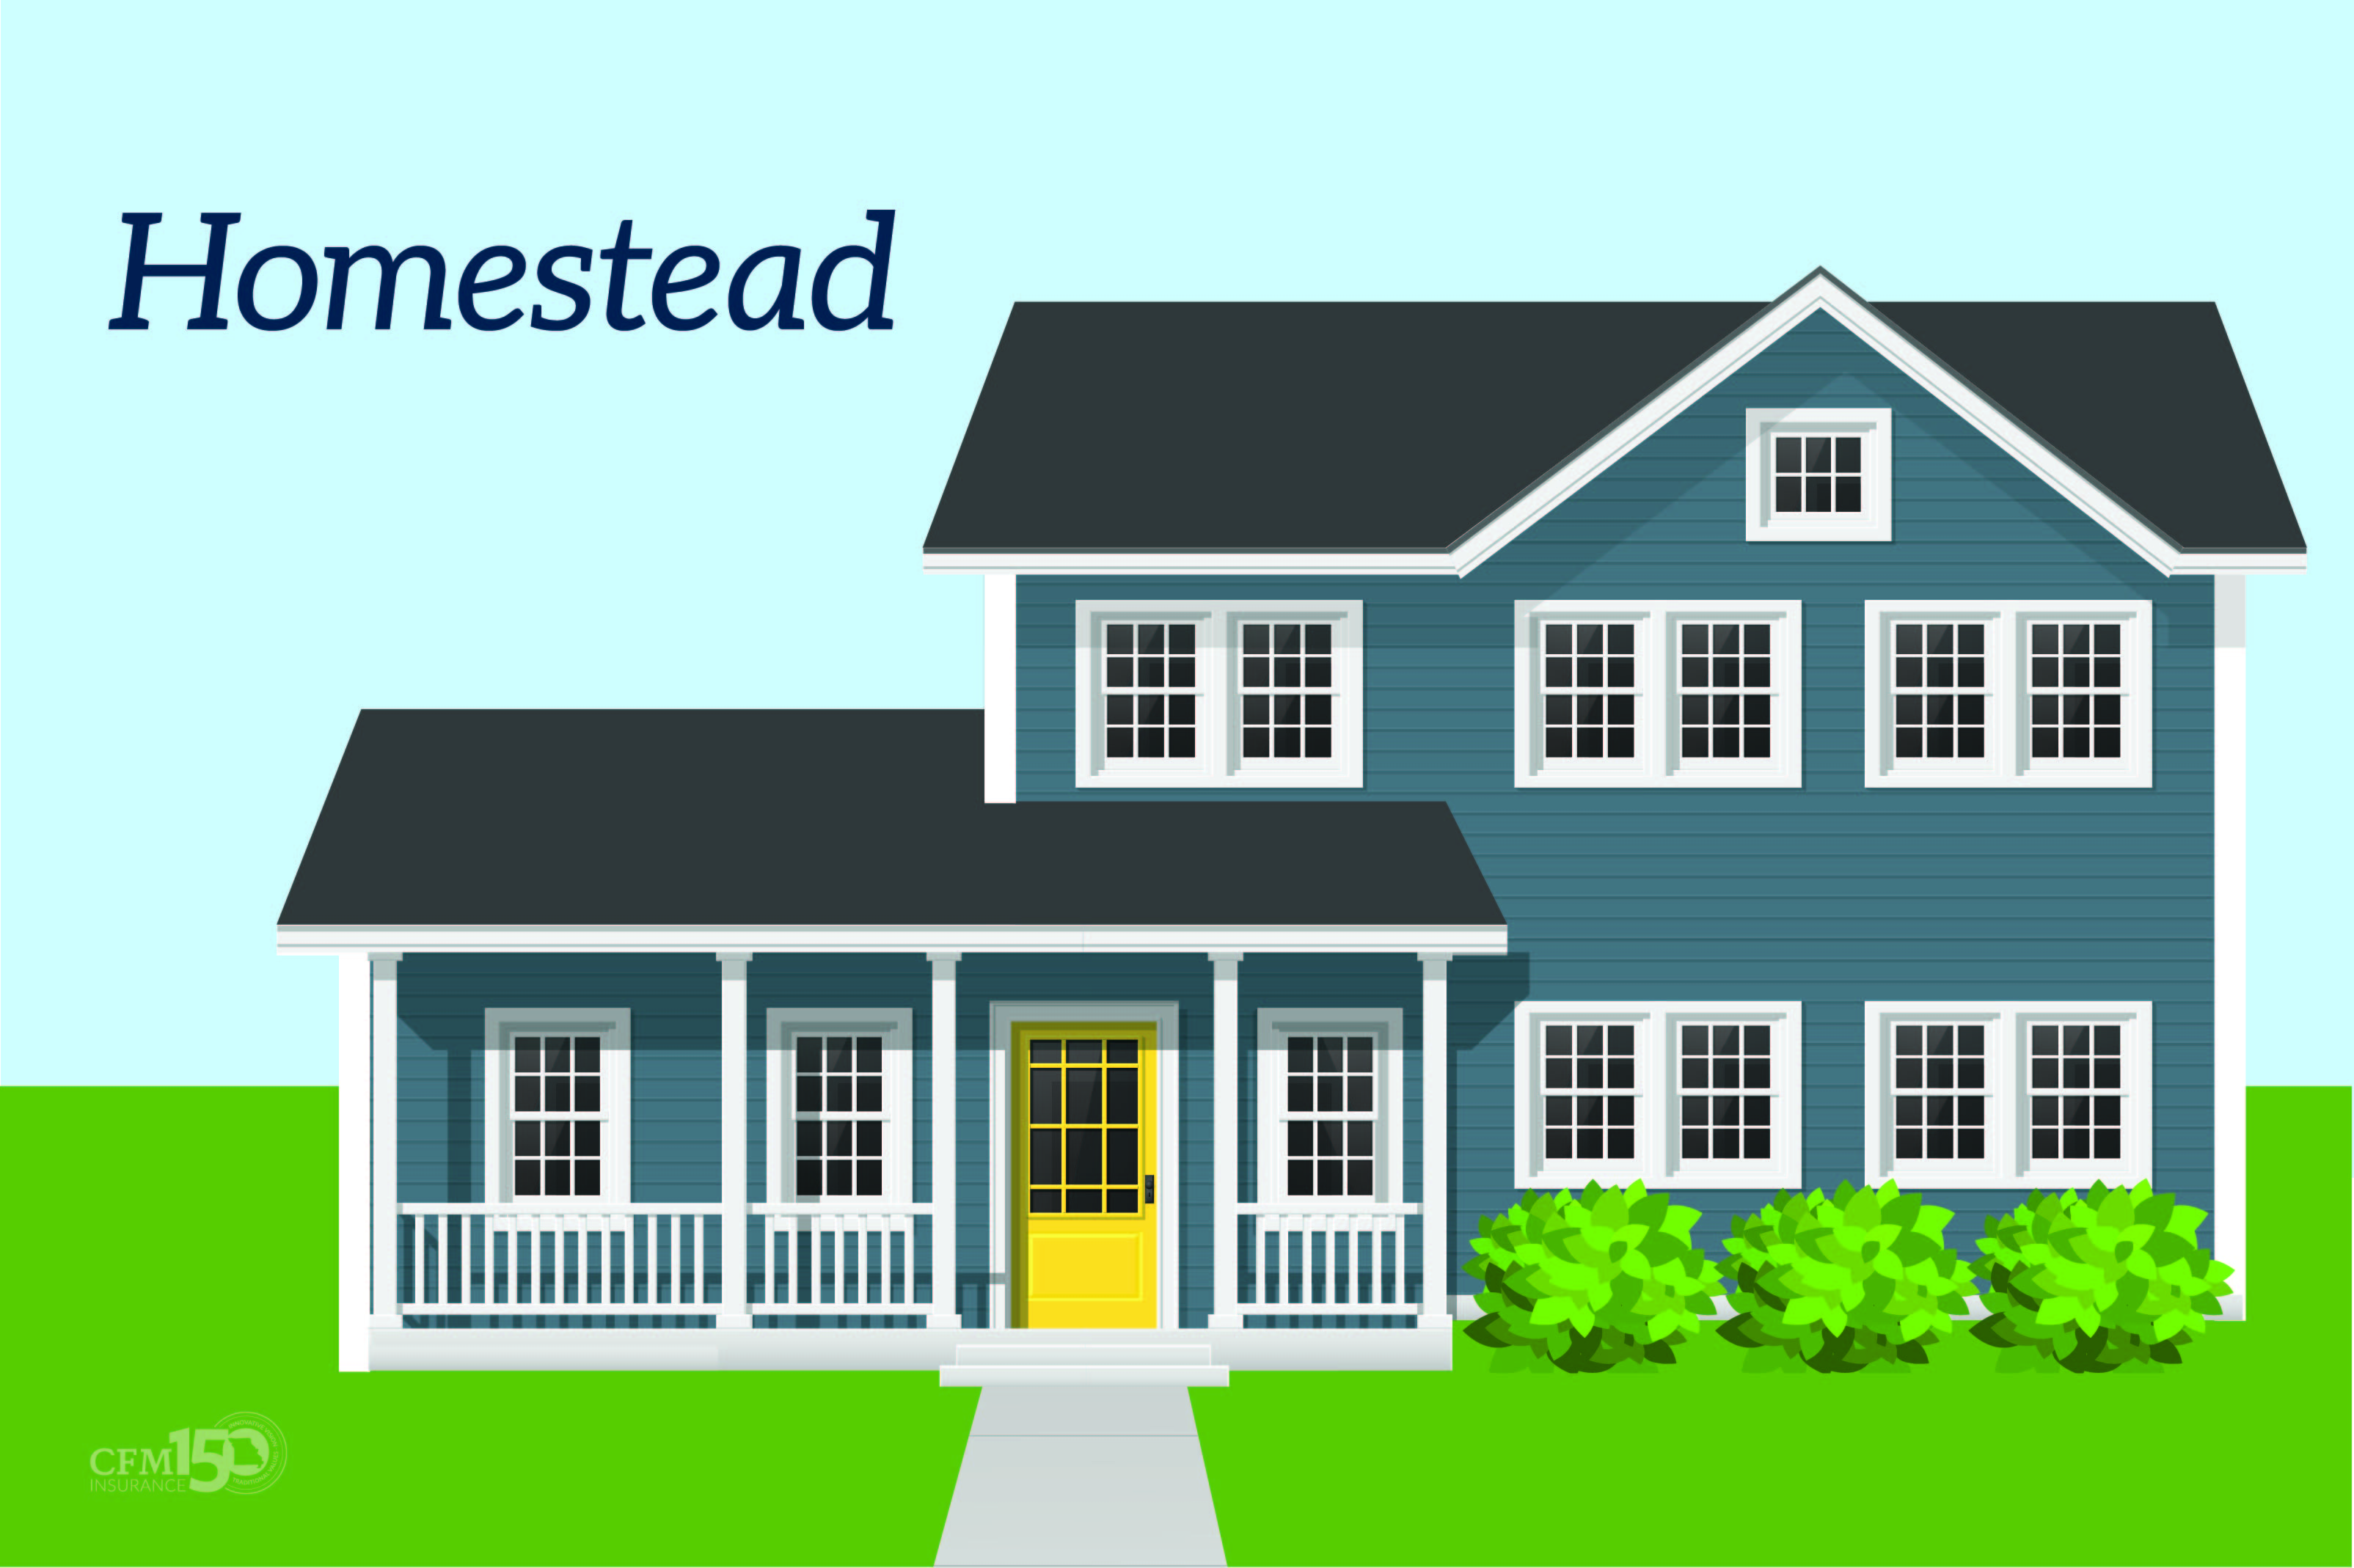 Homestead_Blog-01